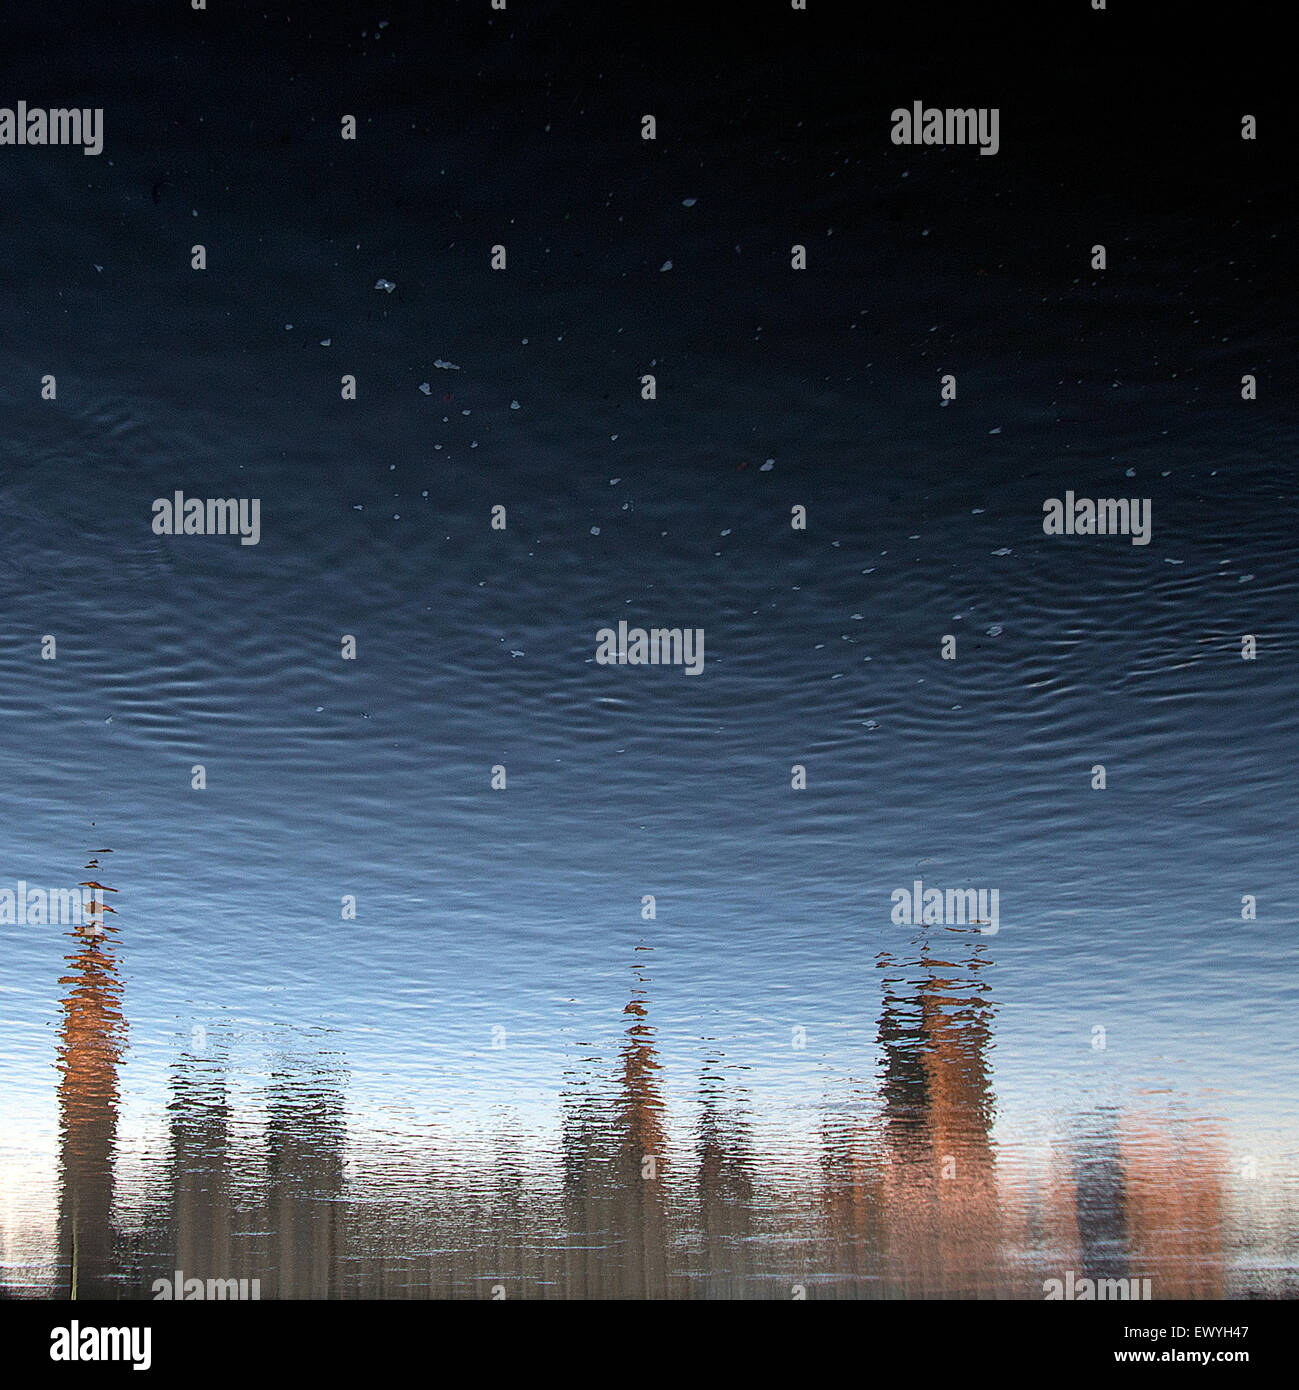 Reflection of Big Ben in the river Thames, London, UK - Stock Image